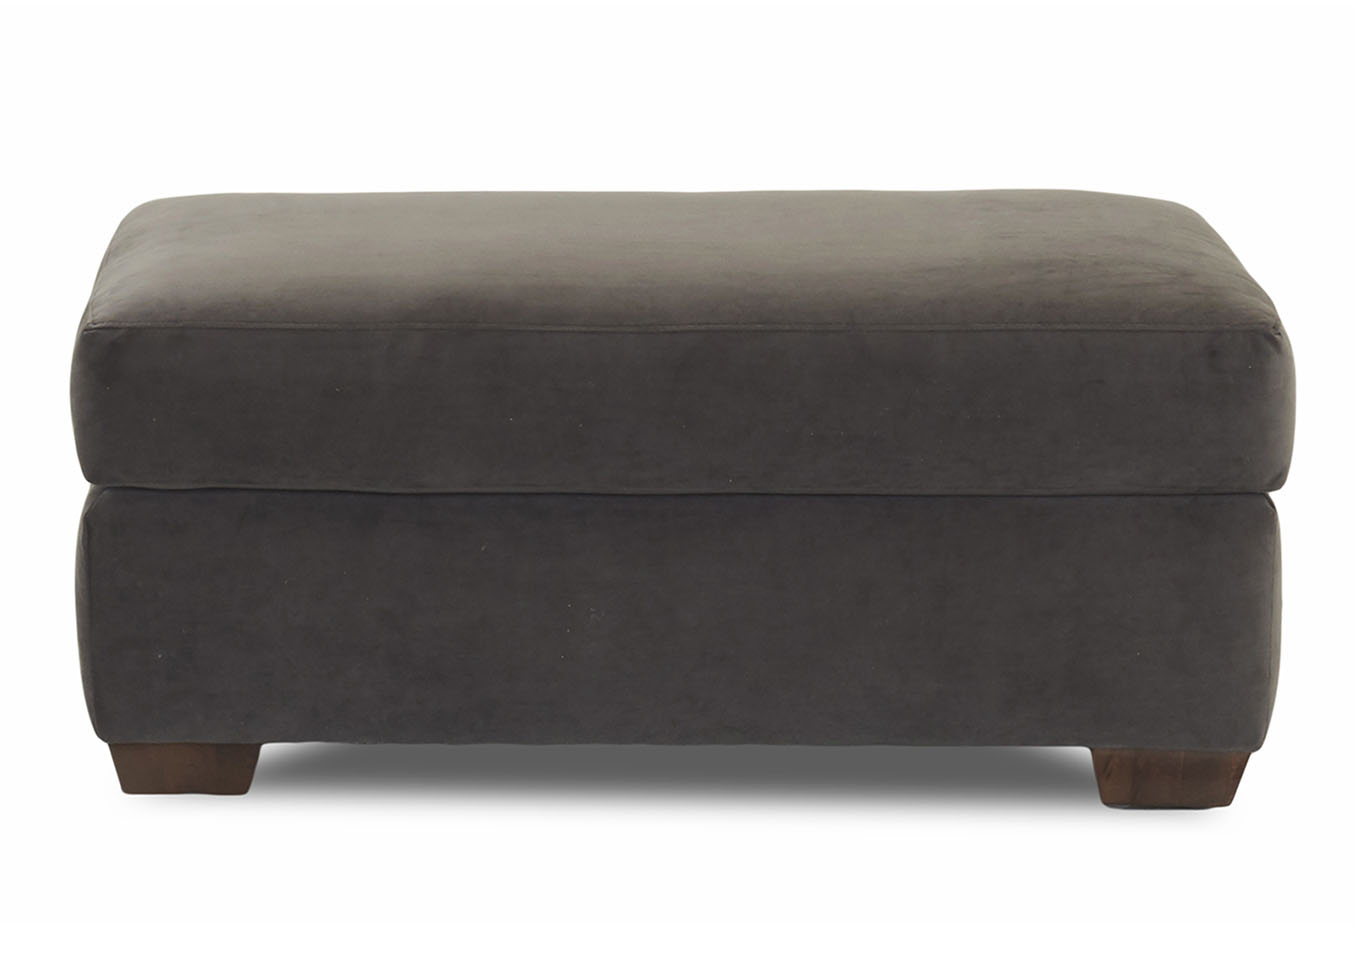 Newport Stationary Fabric Ottoman,Klaussner Home Furnishings